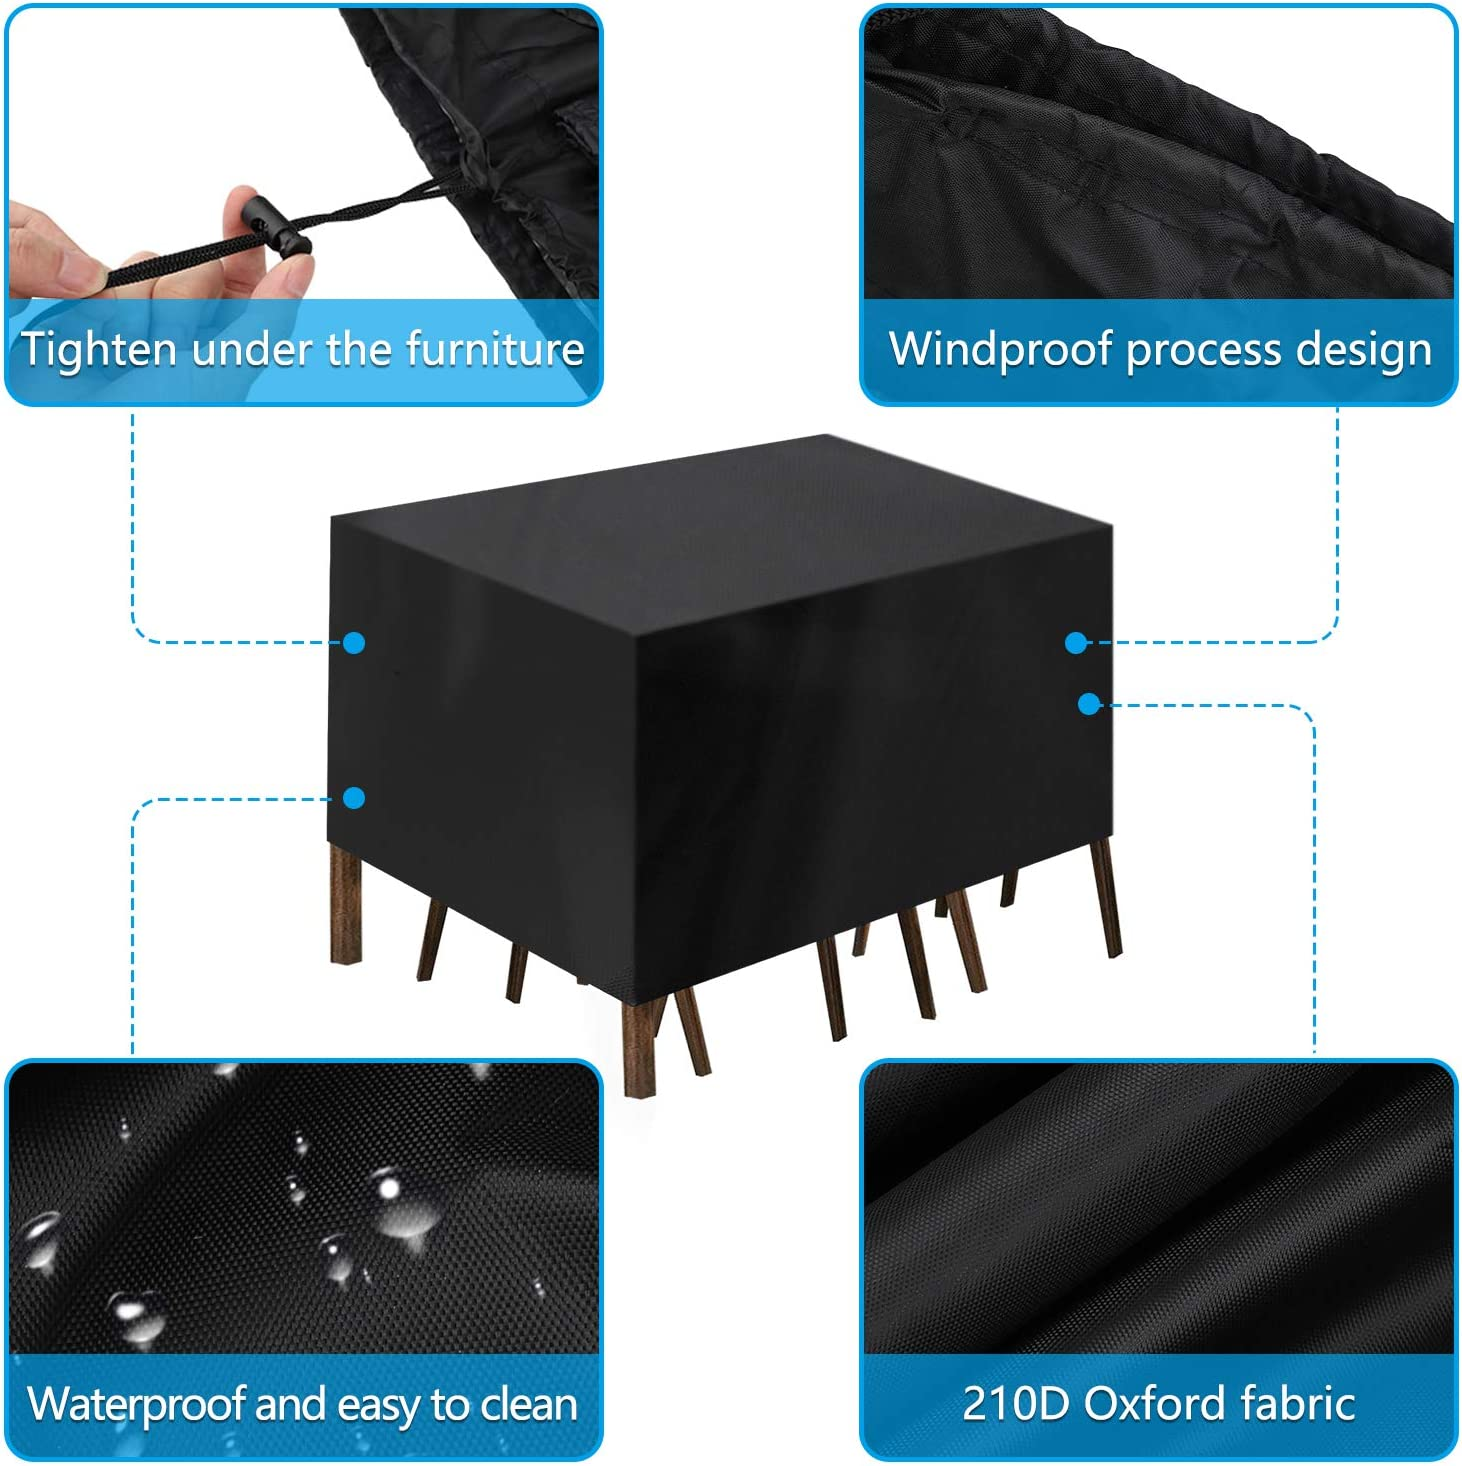 EEEKit Patio Furniture Set Cover Fits 12-14 Seat Large Size 210D Oxford Waterproof Outdoor Table and Chairs Set Cover UV Resistant Dustproof Anti-Fading Cover with Storage Bag-124x63x29Inches